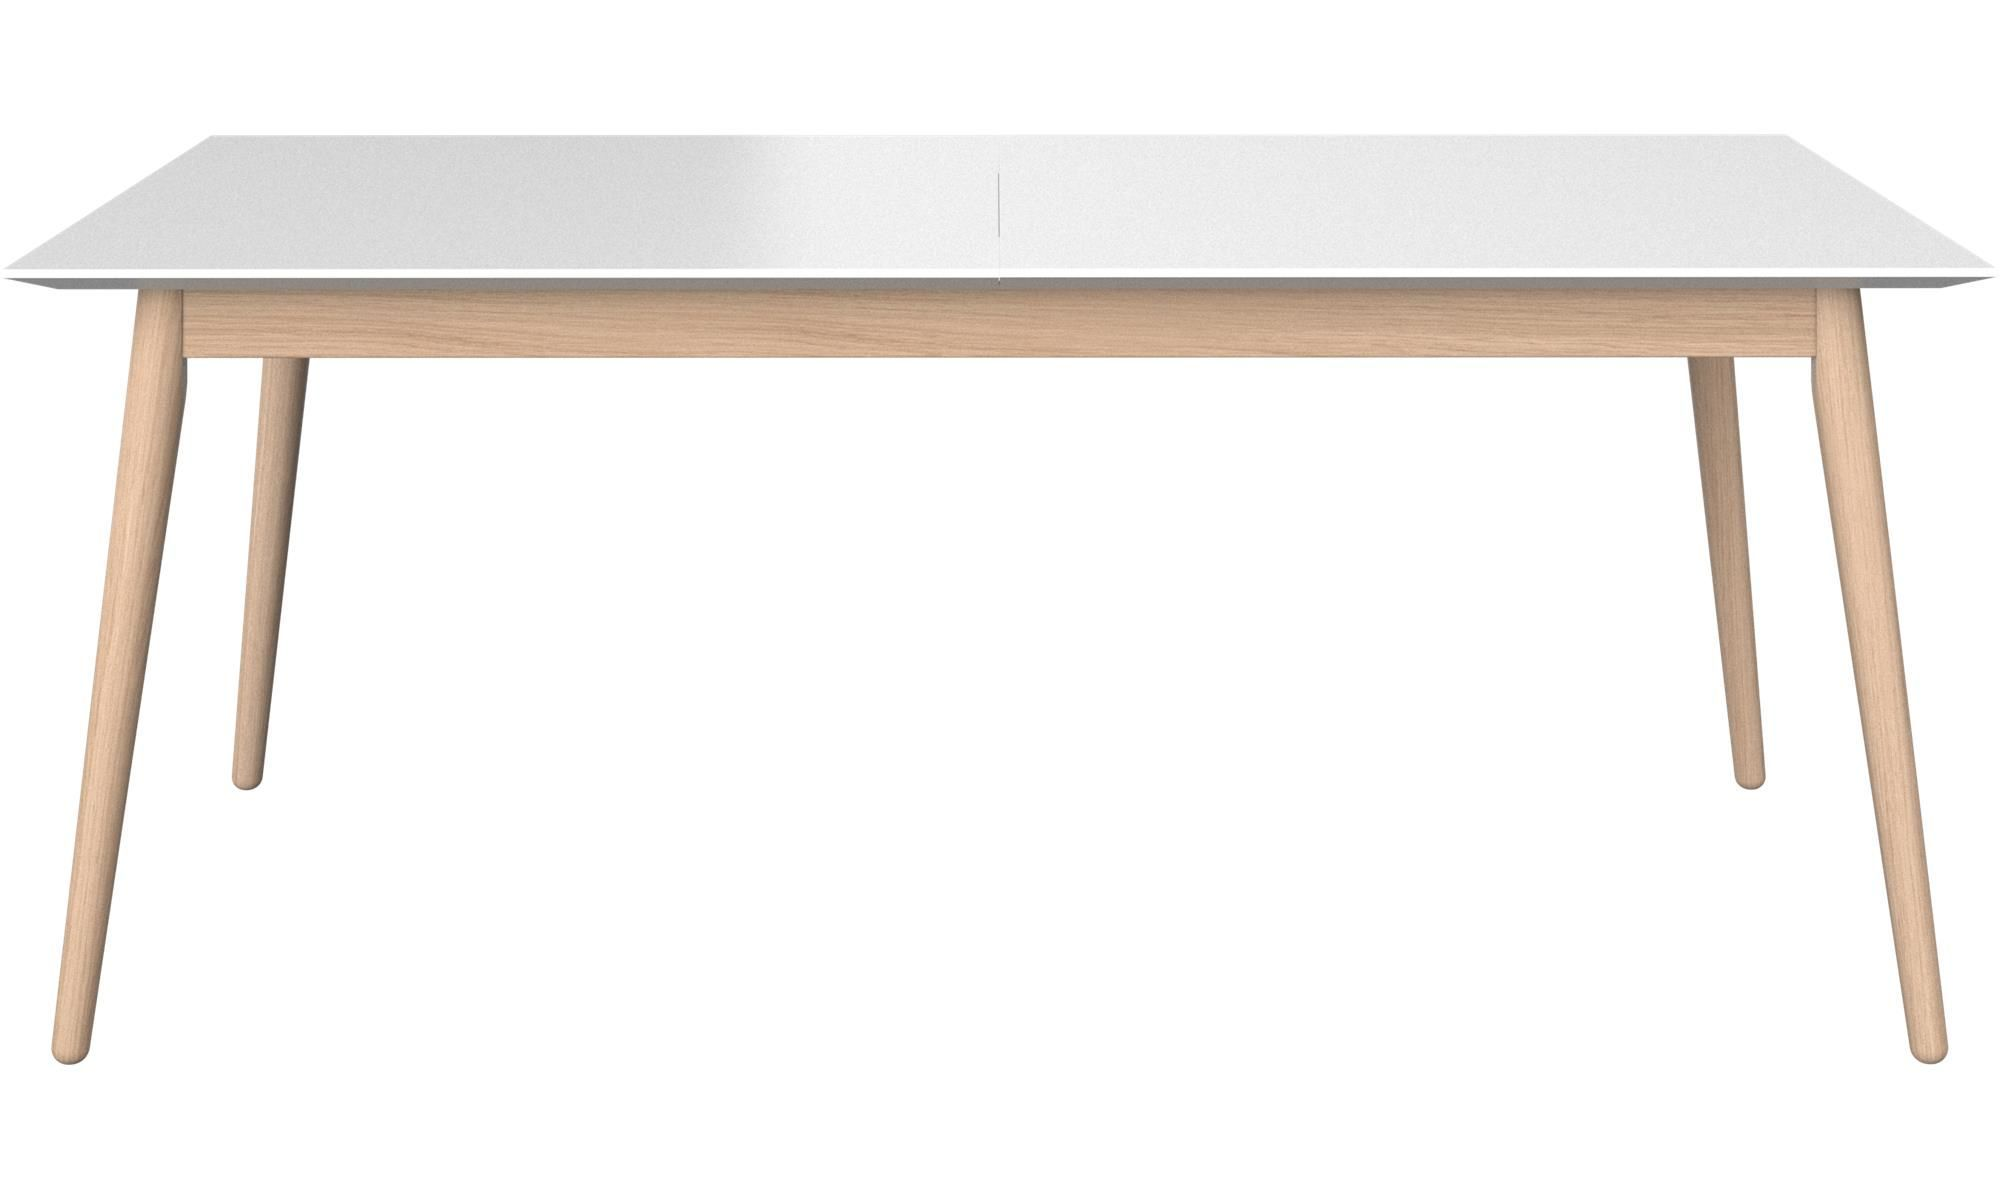 Mia Modern White Lacquer Dining Table Dining Table In Kitchen